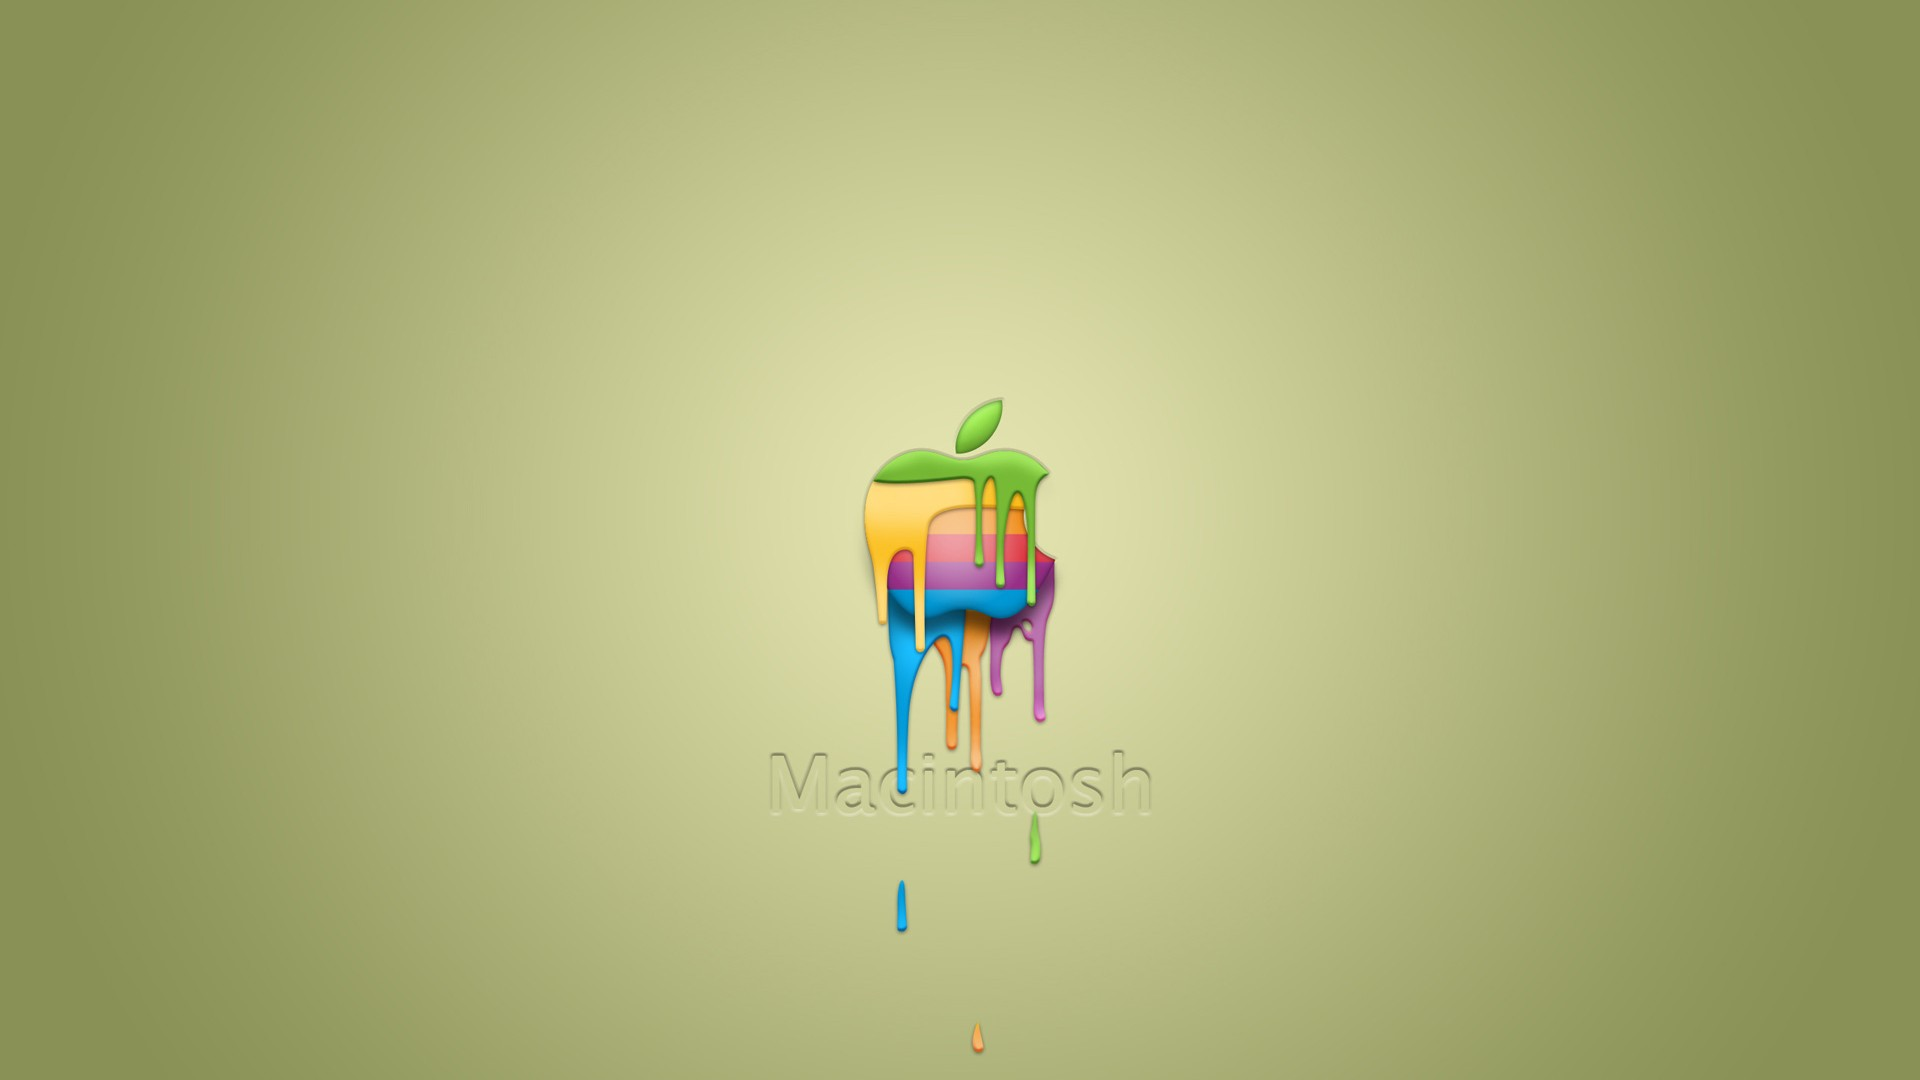 hd wallpaperscomdownloadmacintosh dropping paint 1920x1080 195 hd 1920x1080